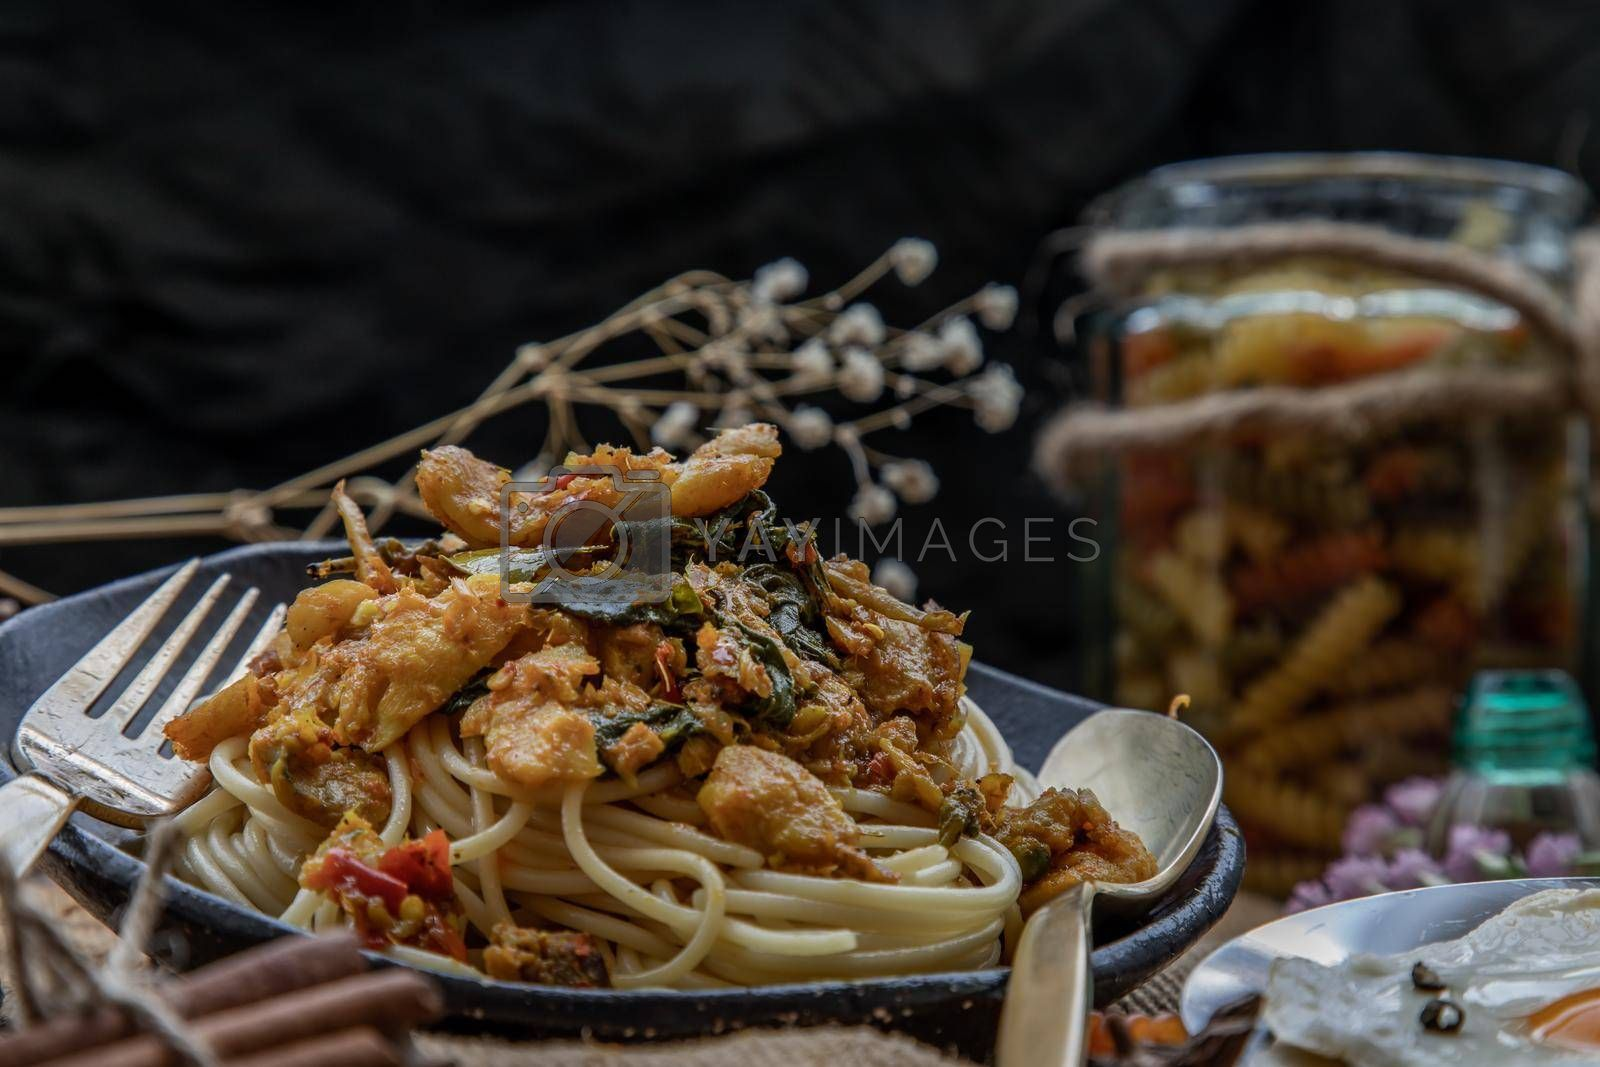 Royalty free image of Close-up of Spaghetti topped with Stir fried spicy snapper on a brown plate. by tosirikul